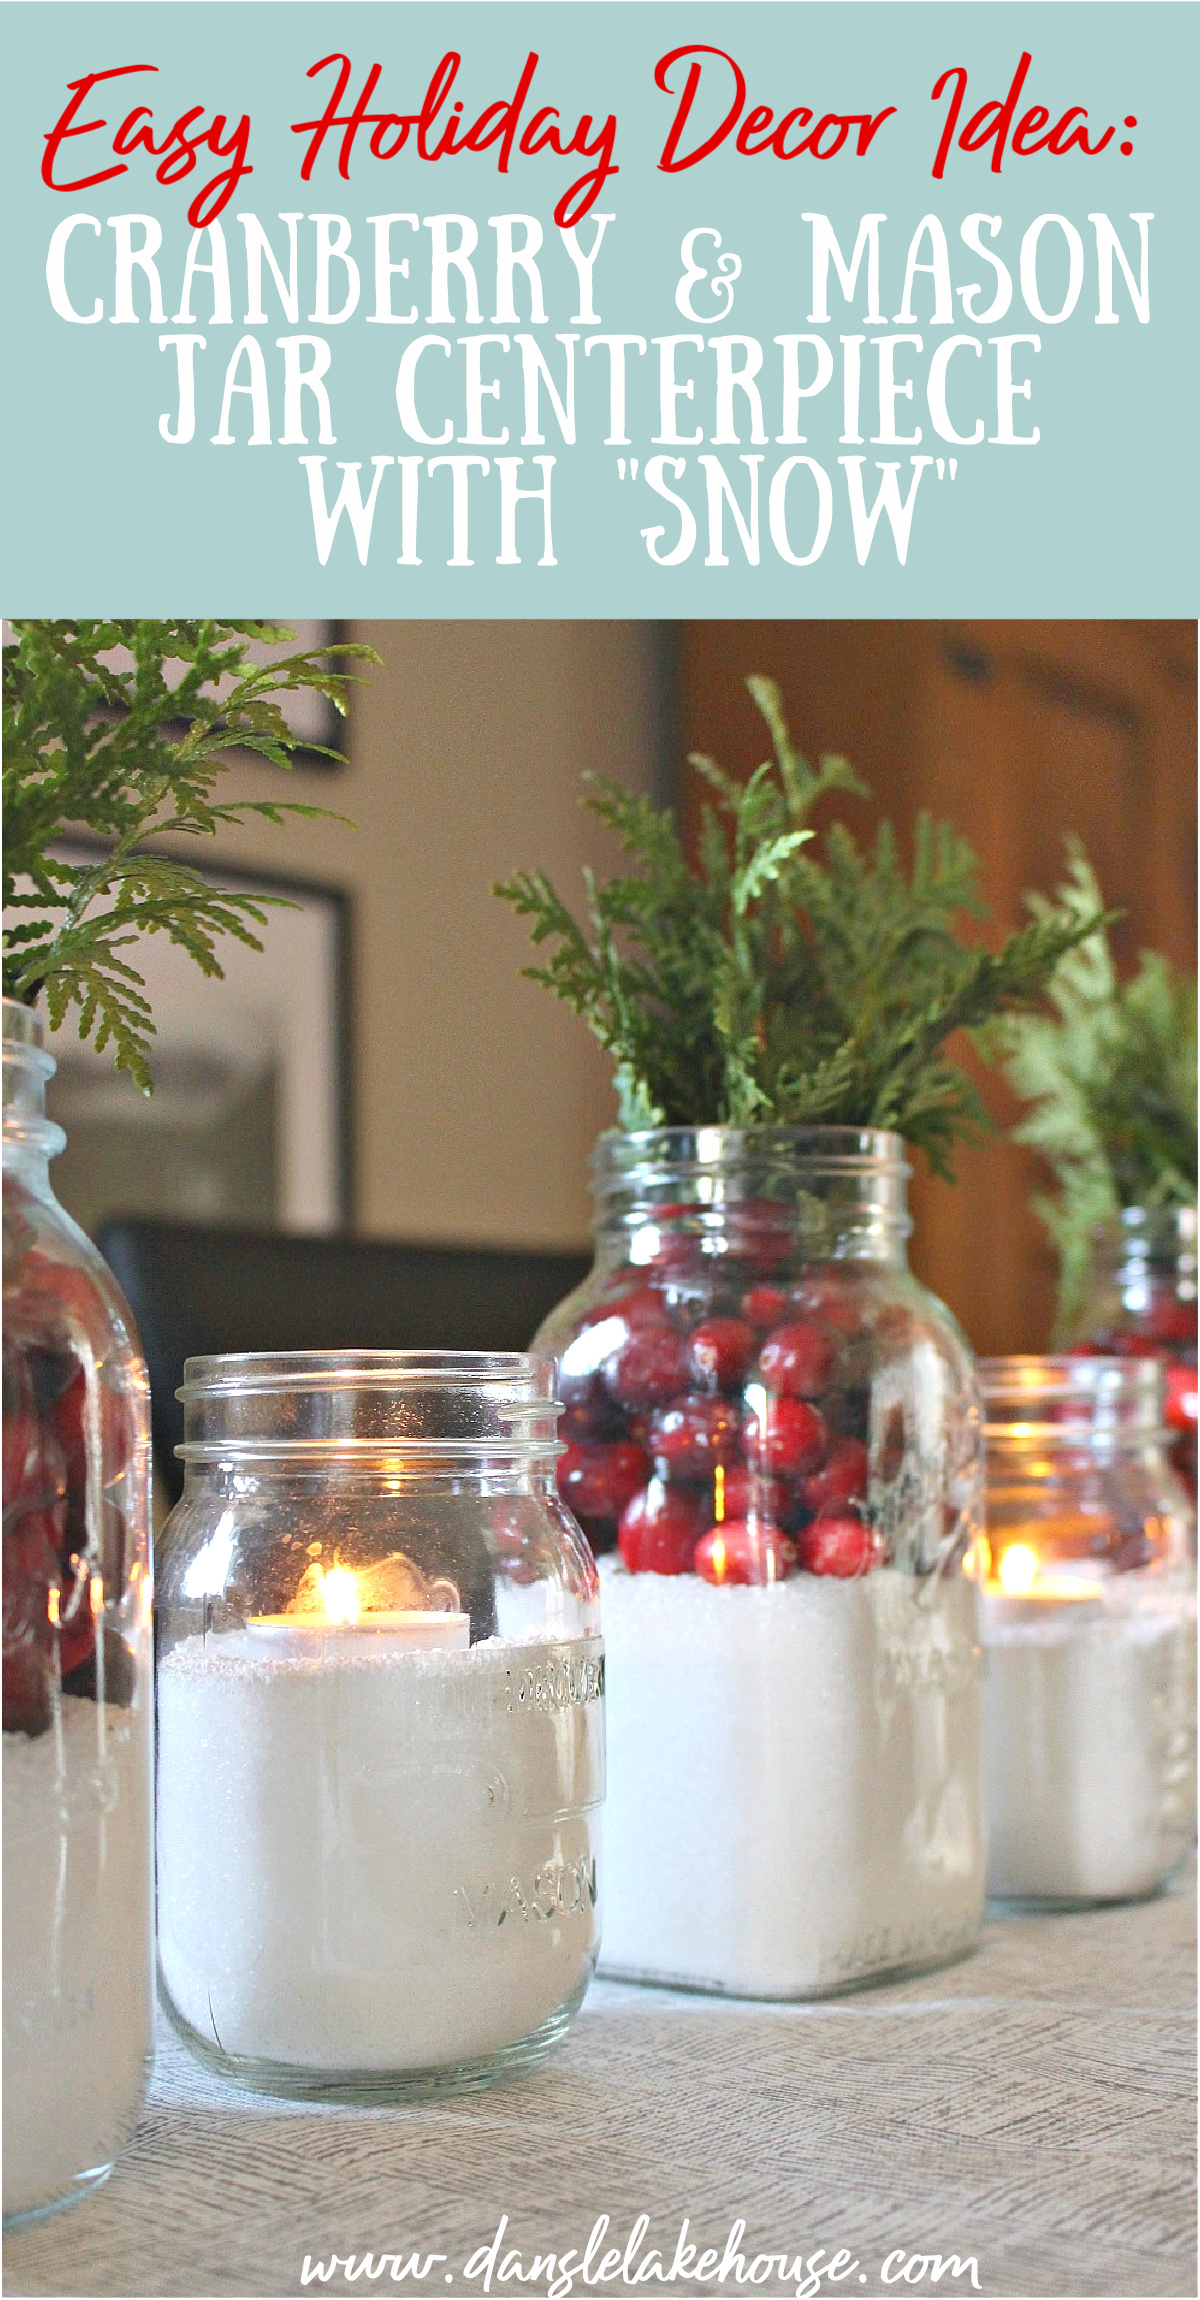 Cranberry and Mason Jar Centerpiece